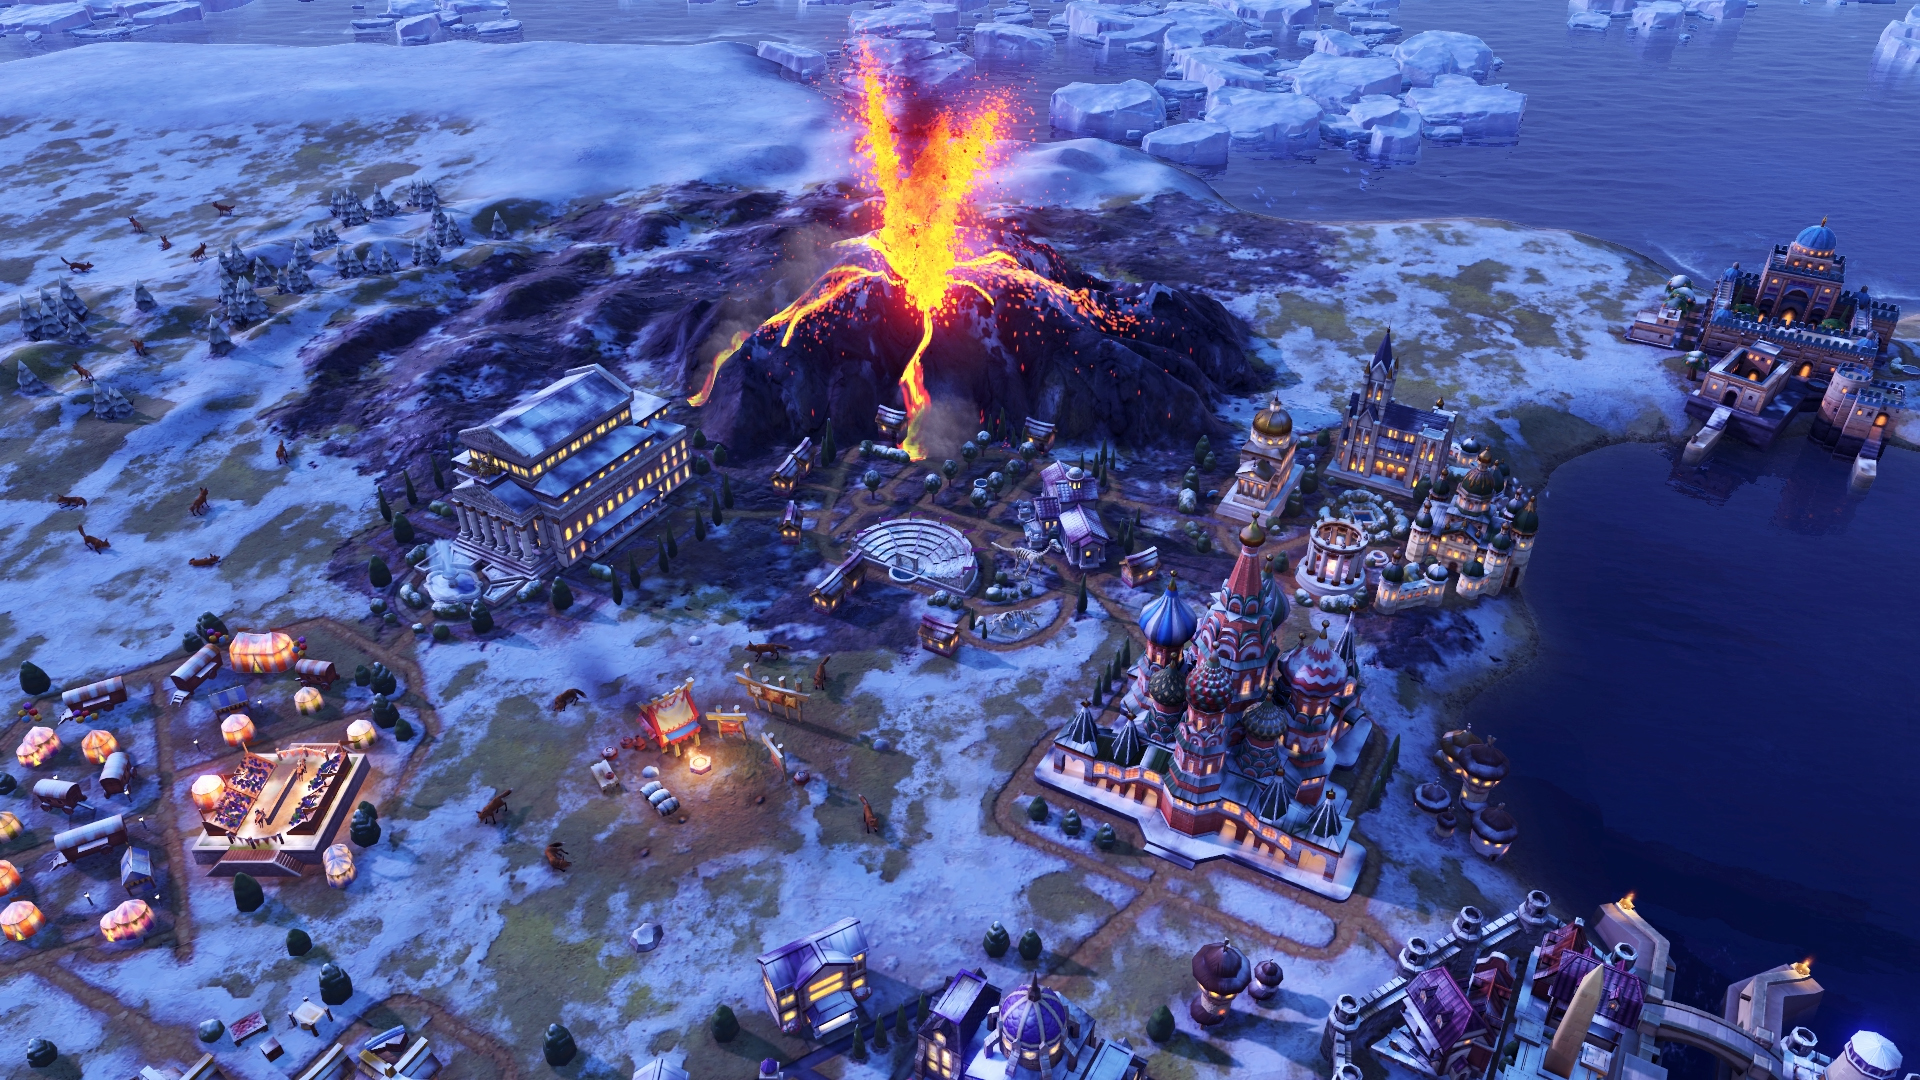 Civilization VI: Gathering Storm PC gameplay with a volcano eruption